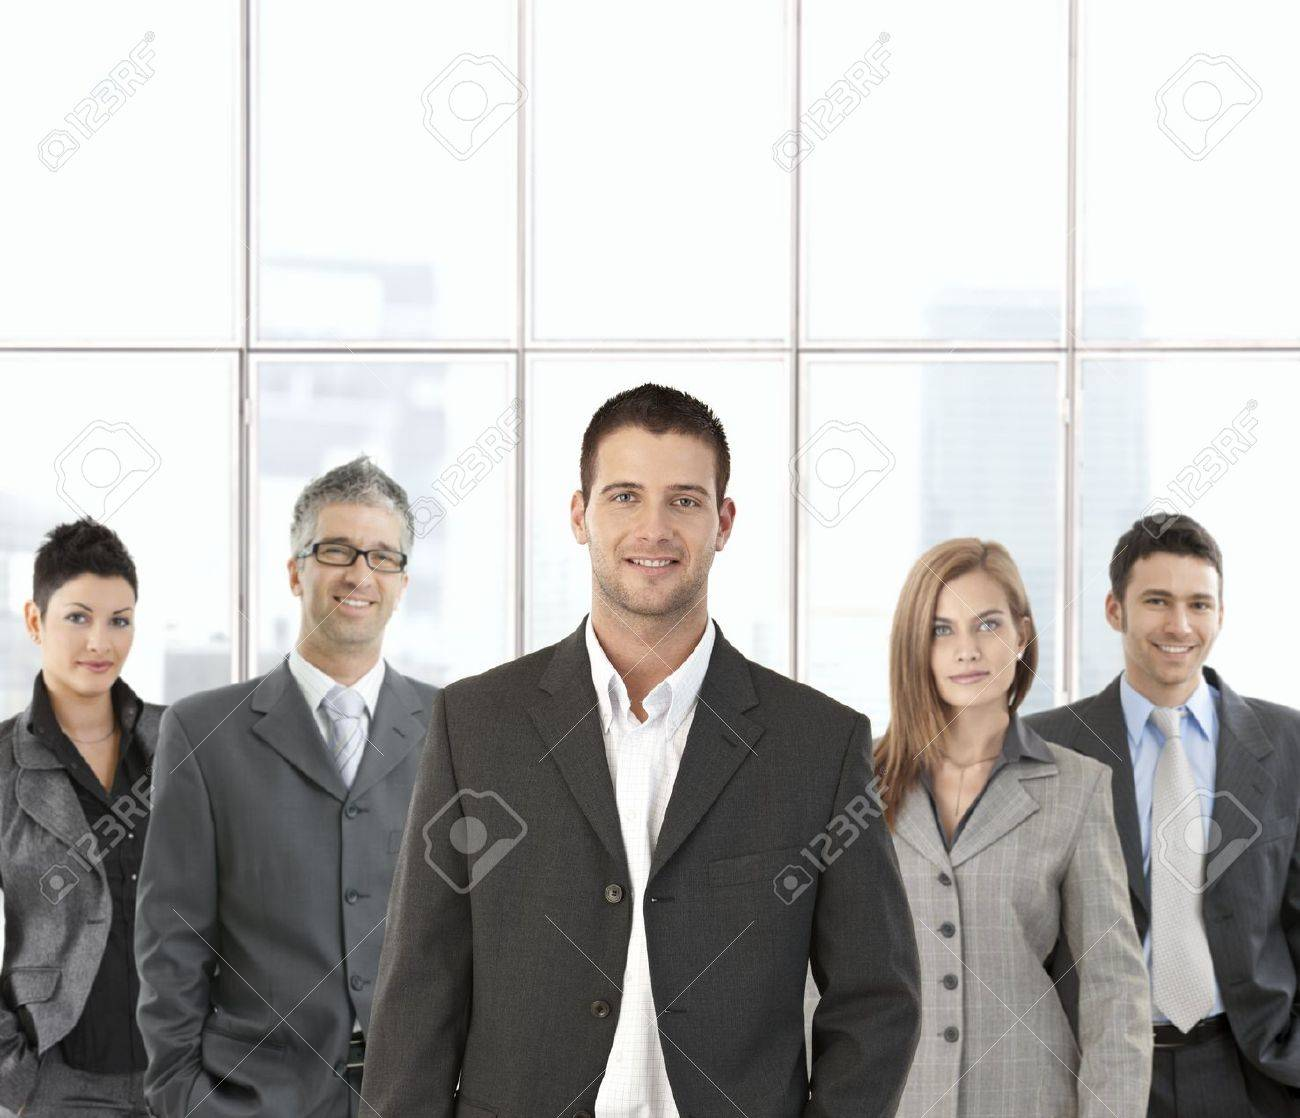 Portrait of successful business team in office. Stock Photo - 8746972